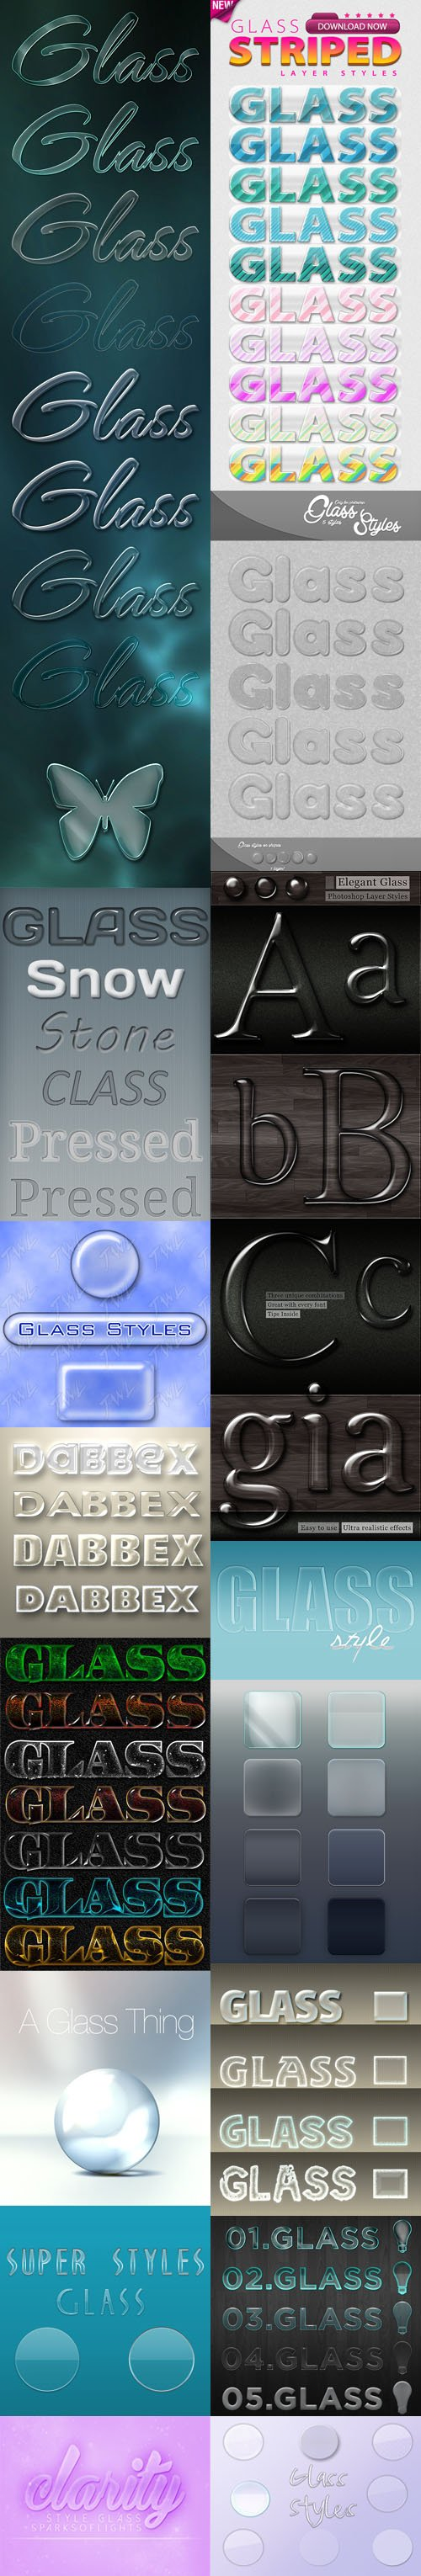 125 Glass & Aero Photoshop Styles Collection